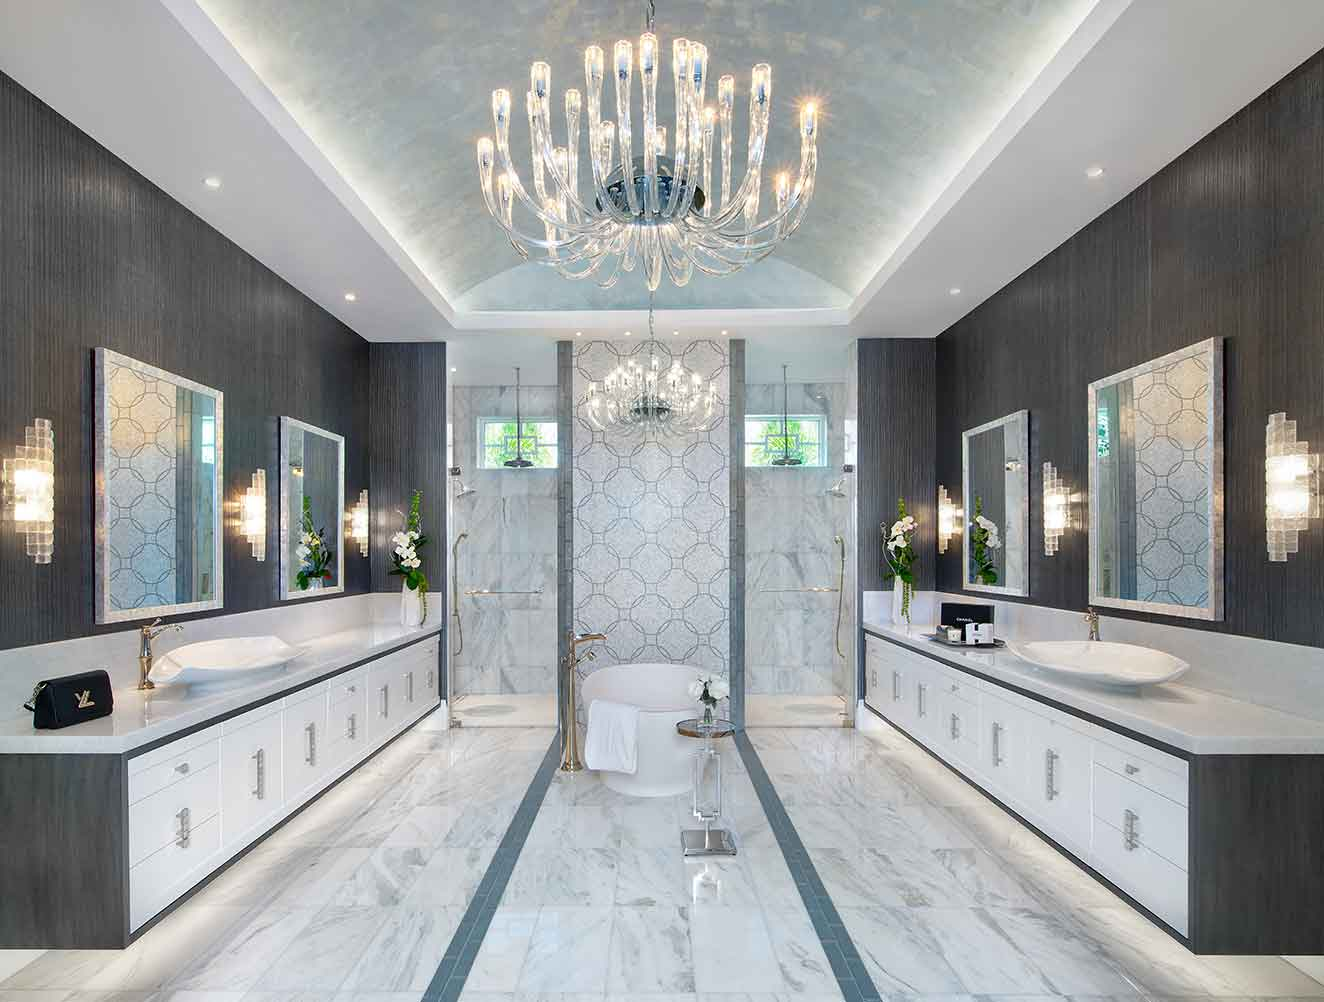 Master Bathroom of Galleon Estate in Naples Florida, single family home designed by Kukk Architecture & Design Naples Architecture Firm